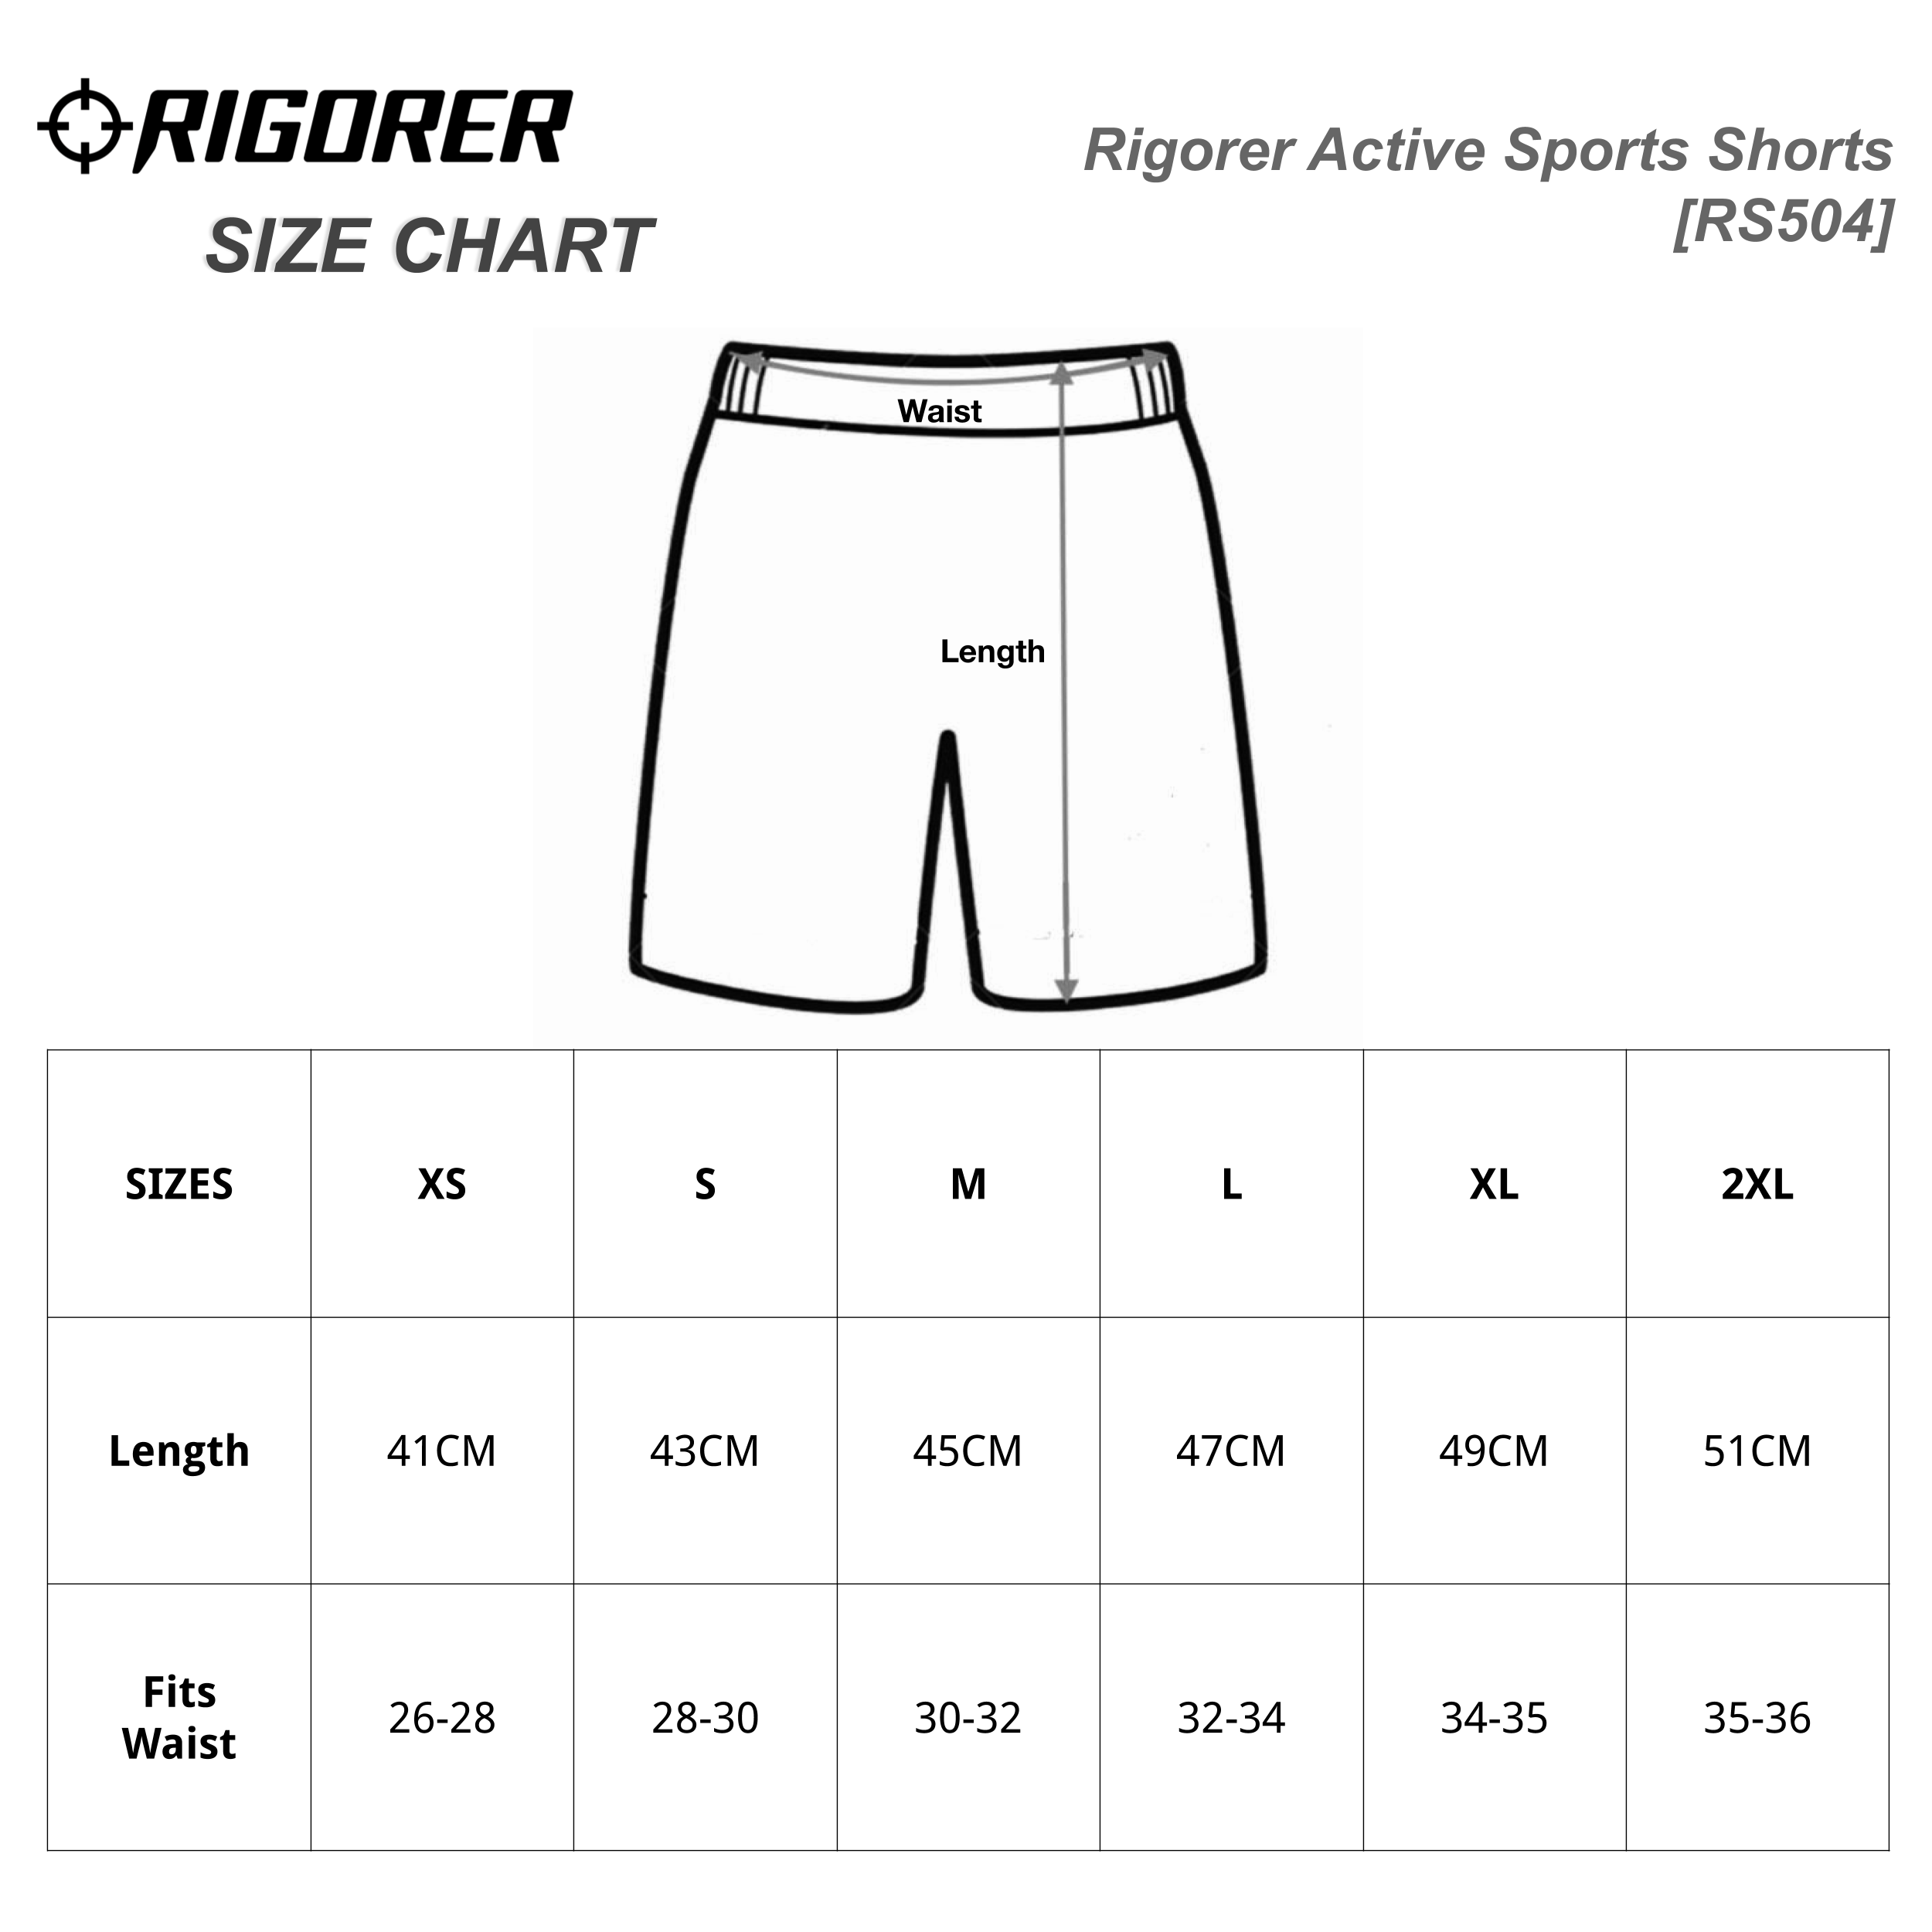 Rigorer Active Sports Shorts[RS504] Sizing Chart